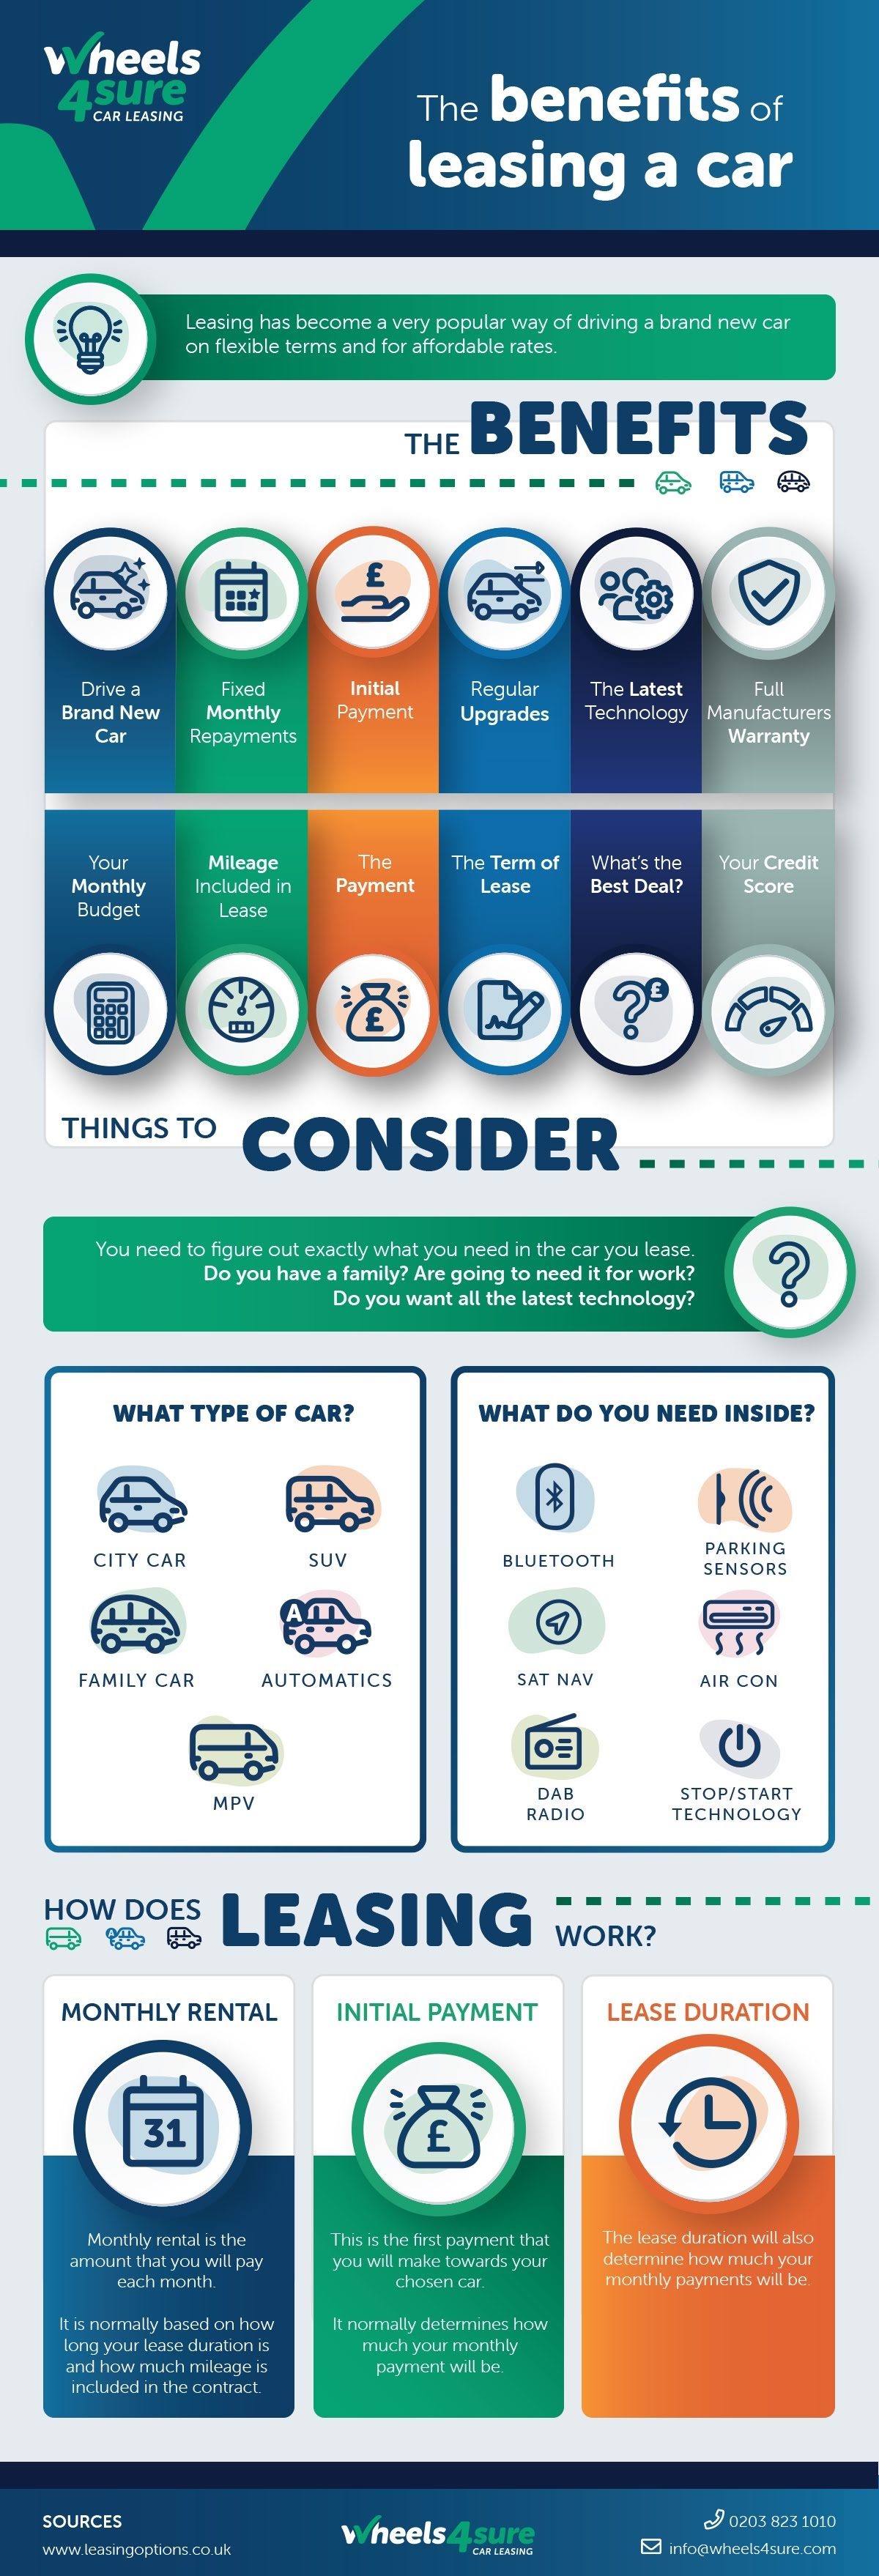 The Benefits of Leasing a Car #infographic